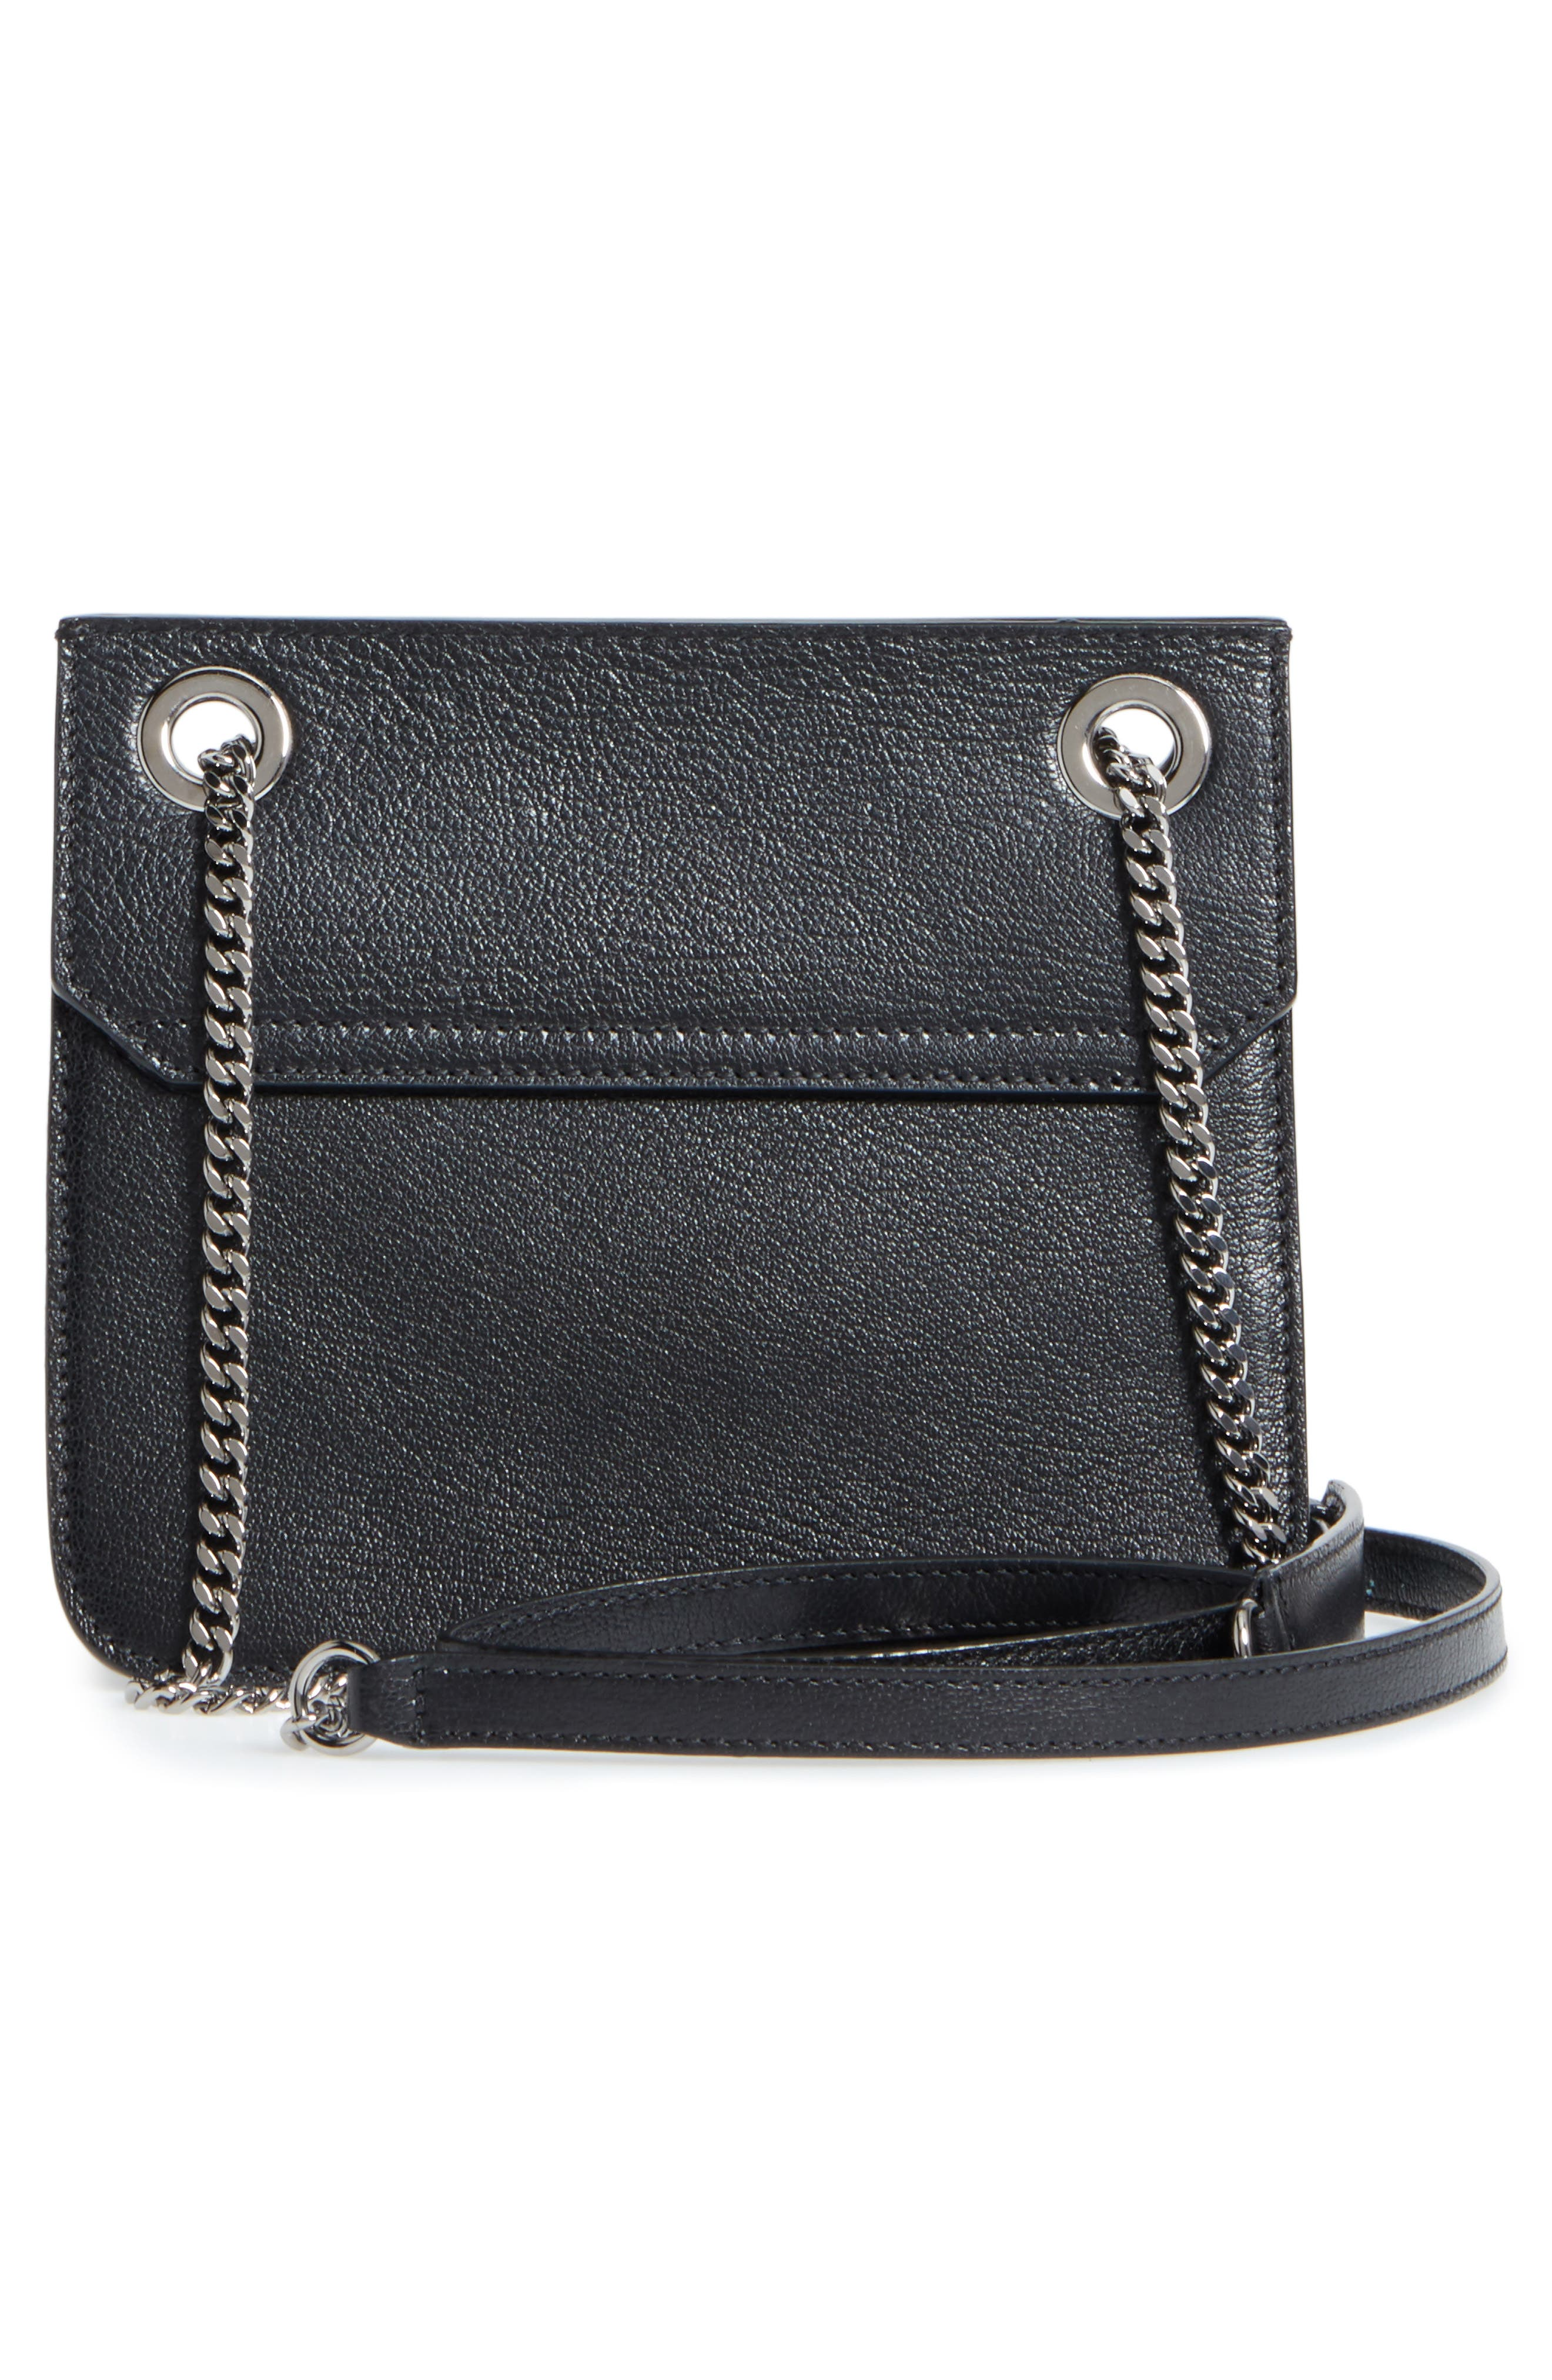 Rebel Leather Crossbody Bag,                             Alternate thumbnail 3, color,                             Black/ Gunmetal